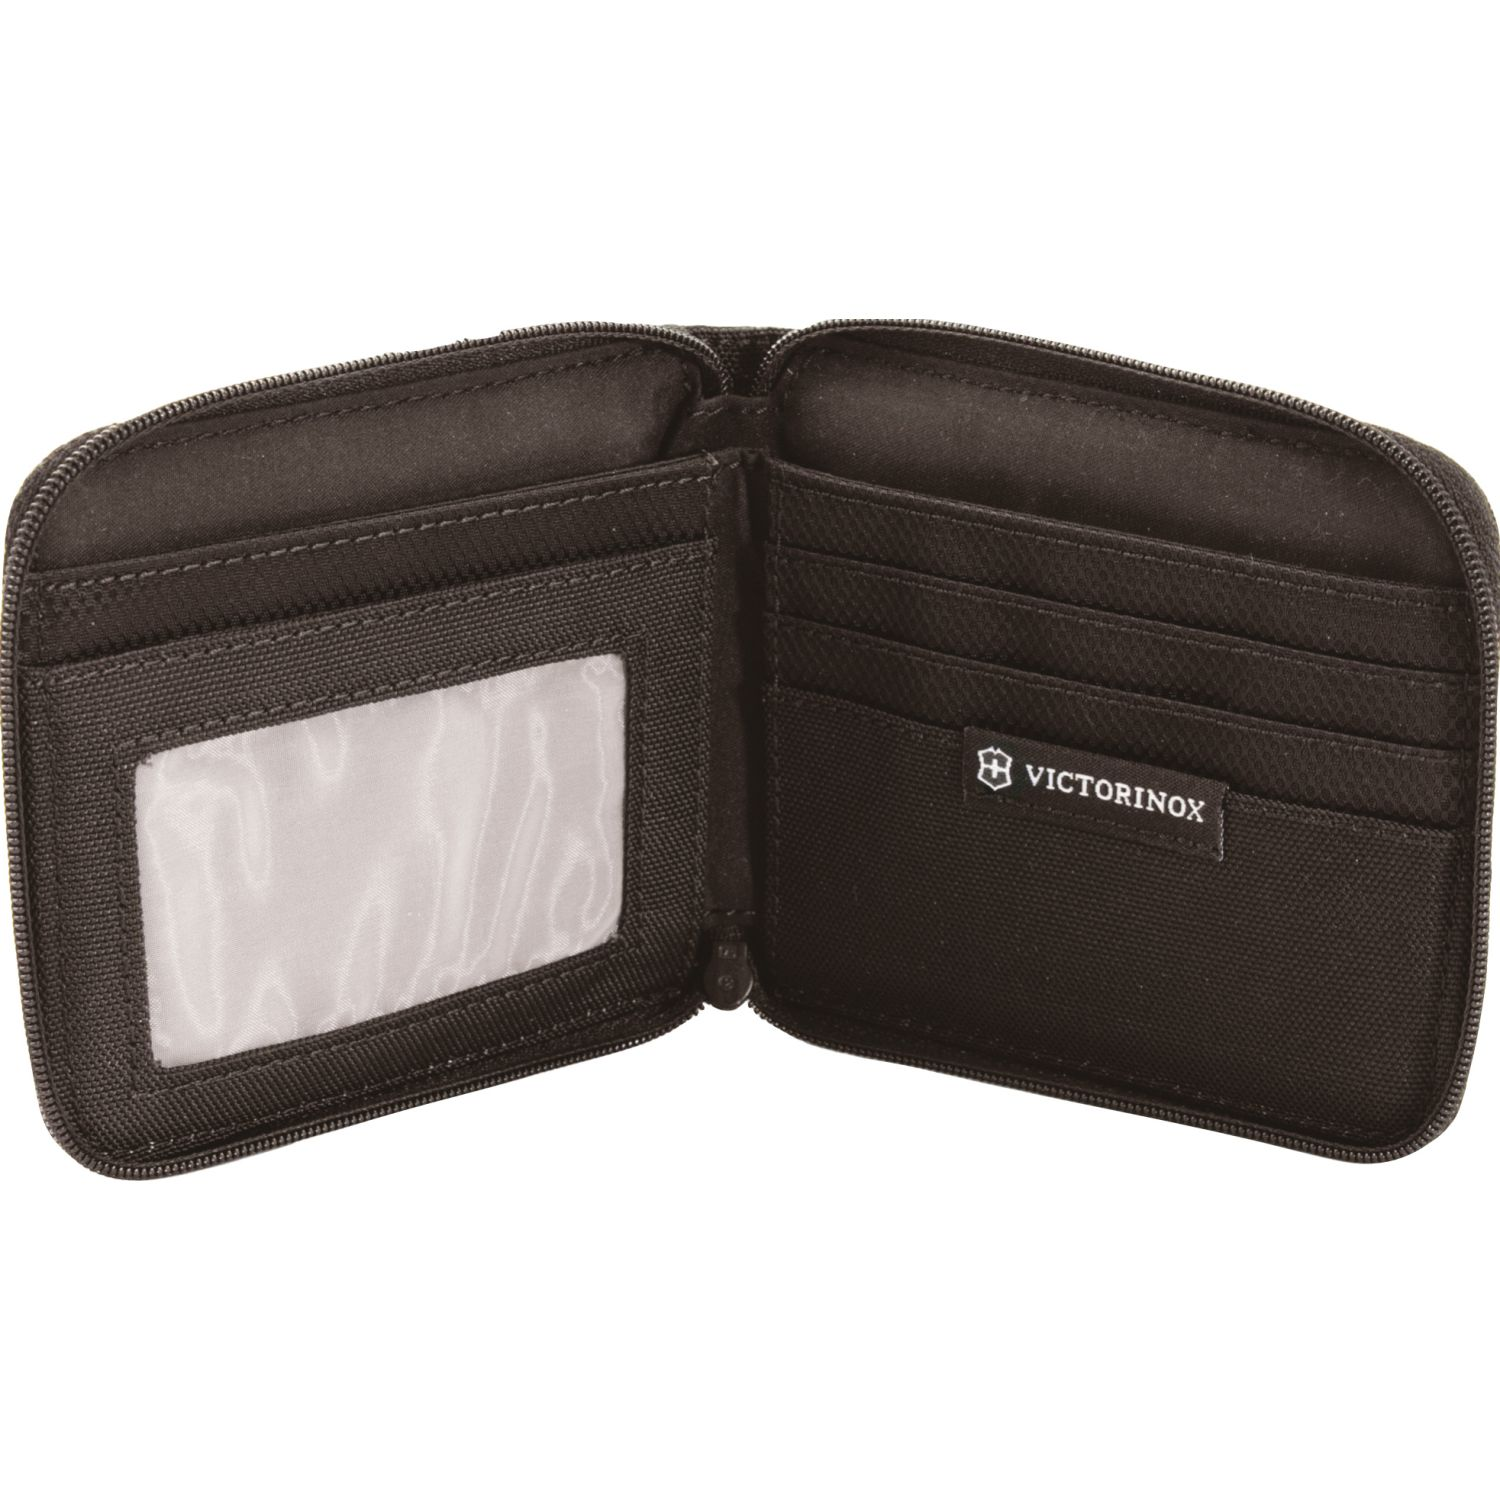 Victorinox Billetera Zip-Around Wallet, Black Negro Billeteras